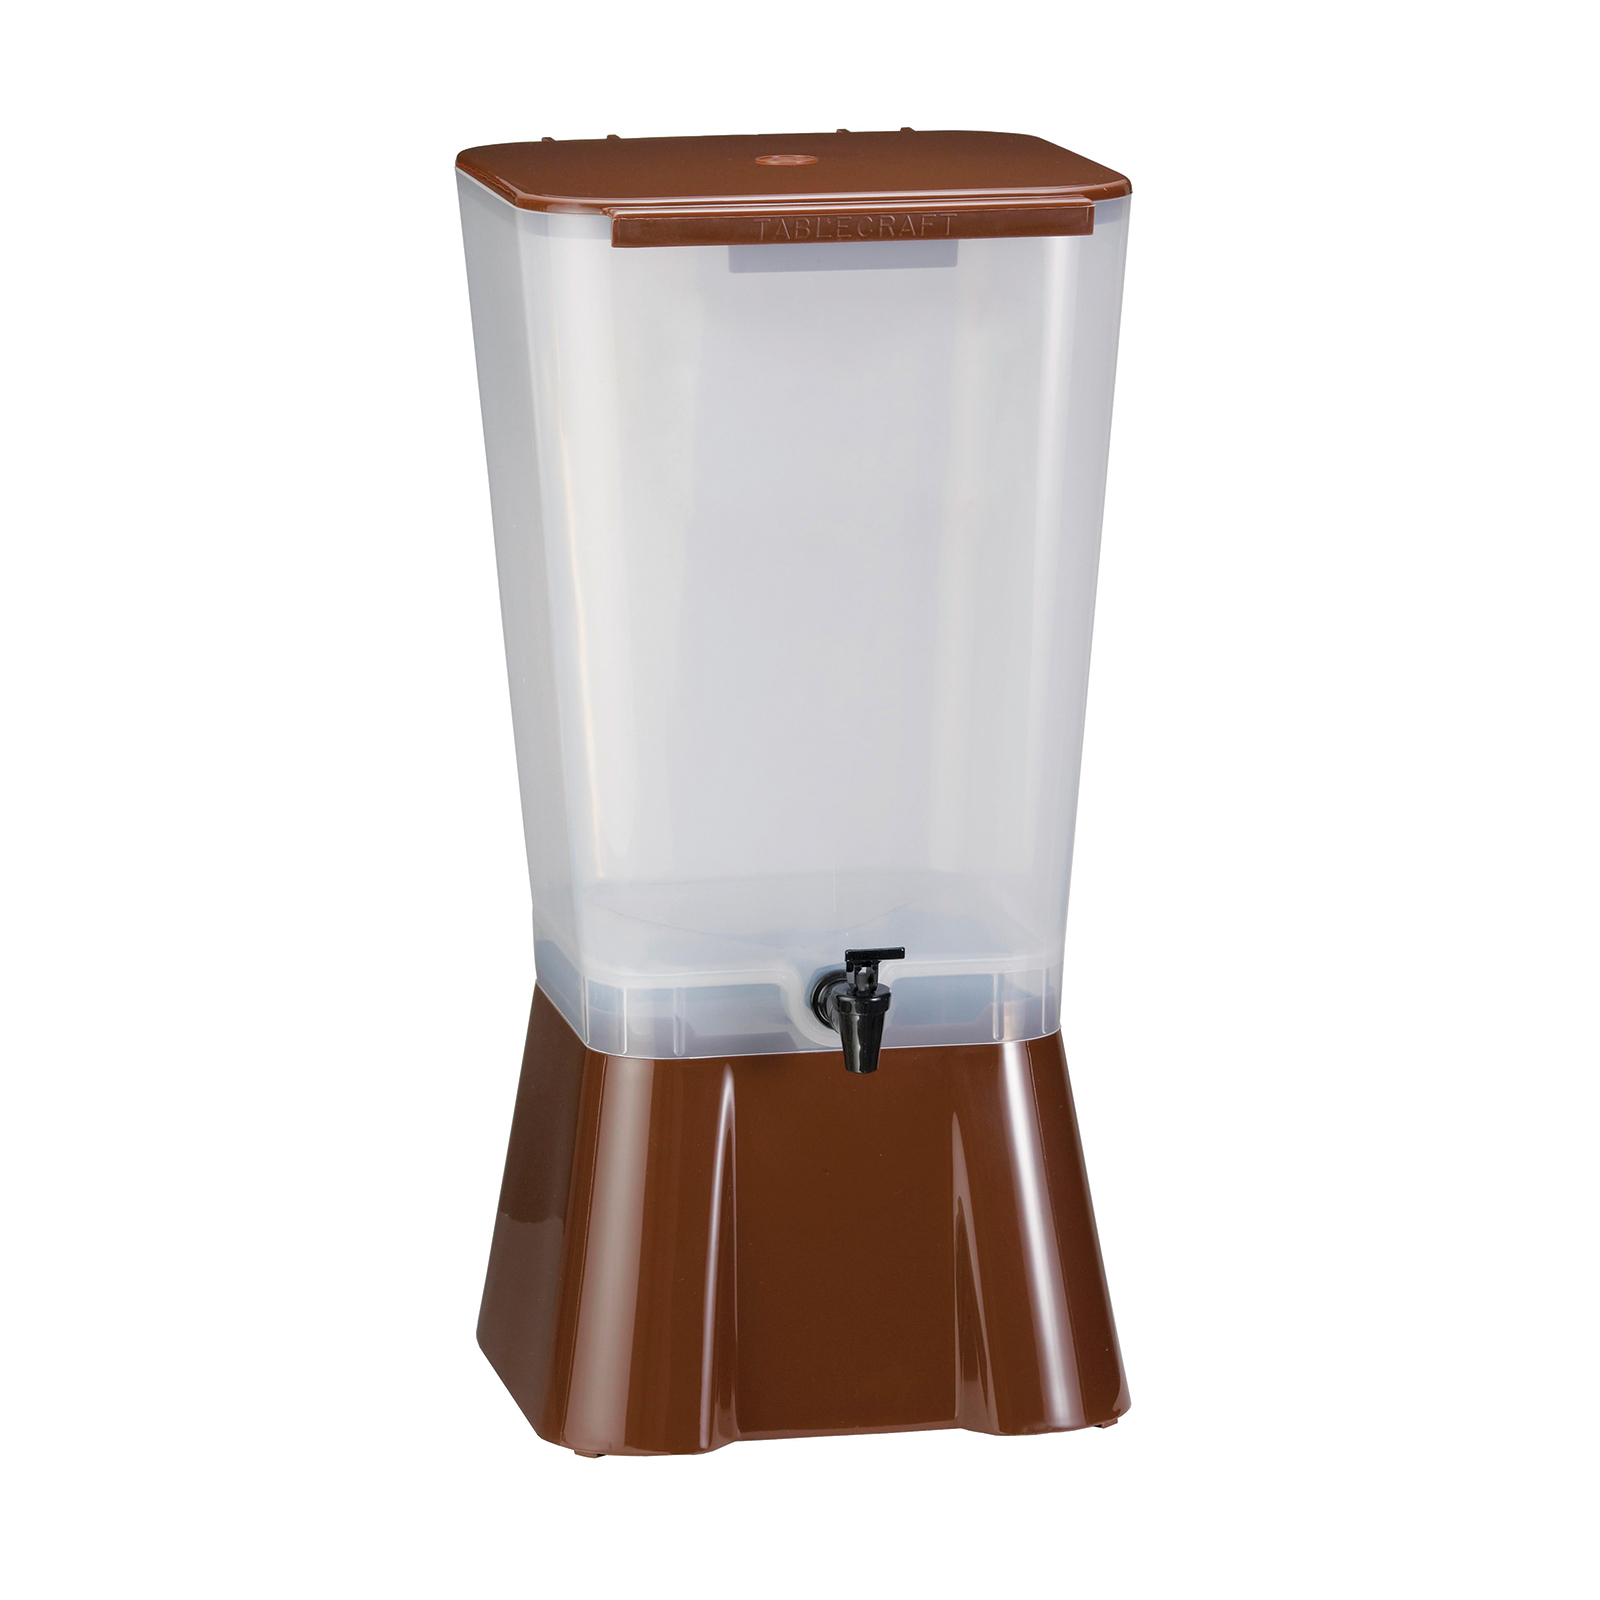 2550-261 TableCraft Products 1054 beverage dispenser, non-insulated